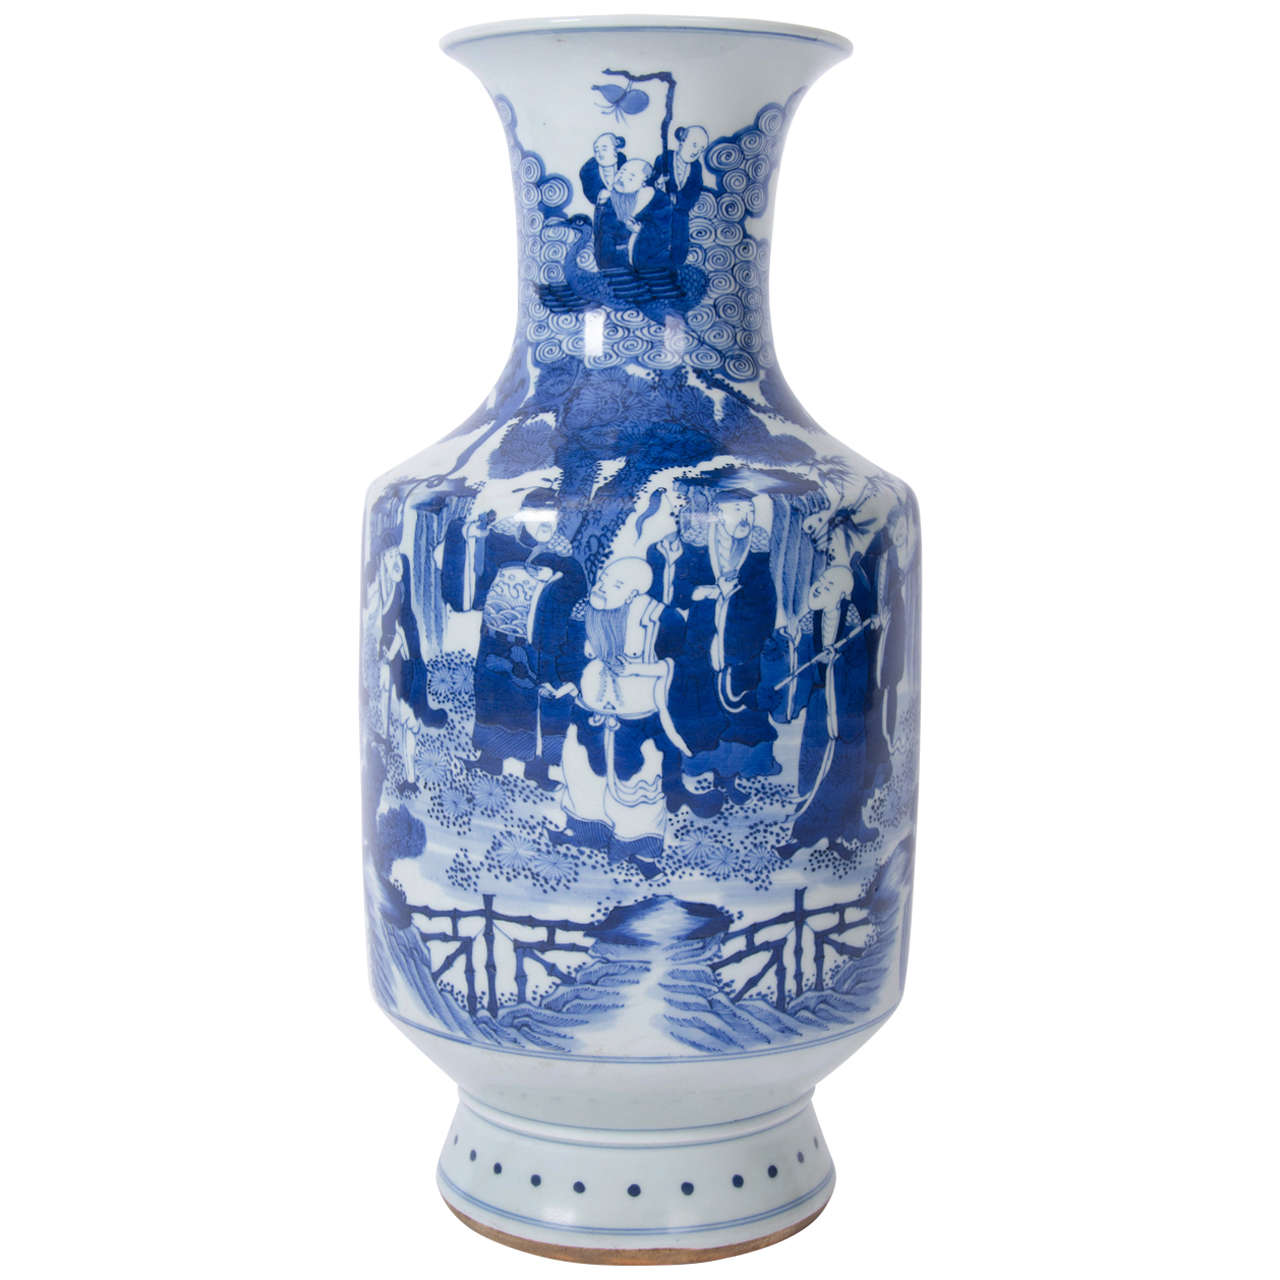 Early 19th c large chinese vase blue and white porcelain qing early 19th c large chinese vase blue and white porcelain qing floridaeventfo Images